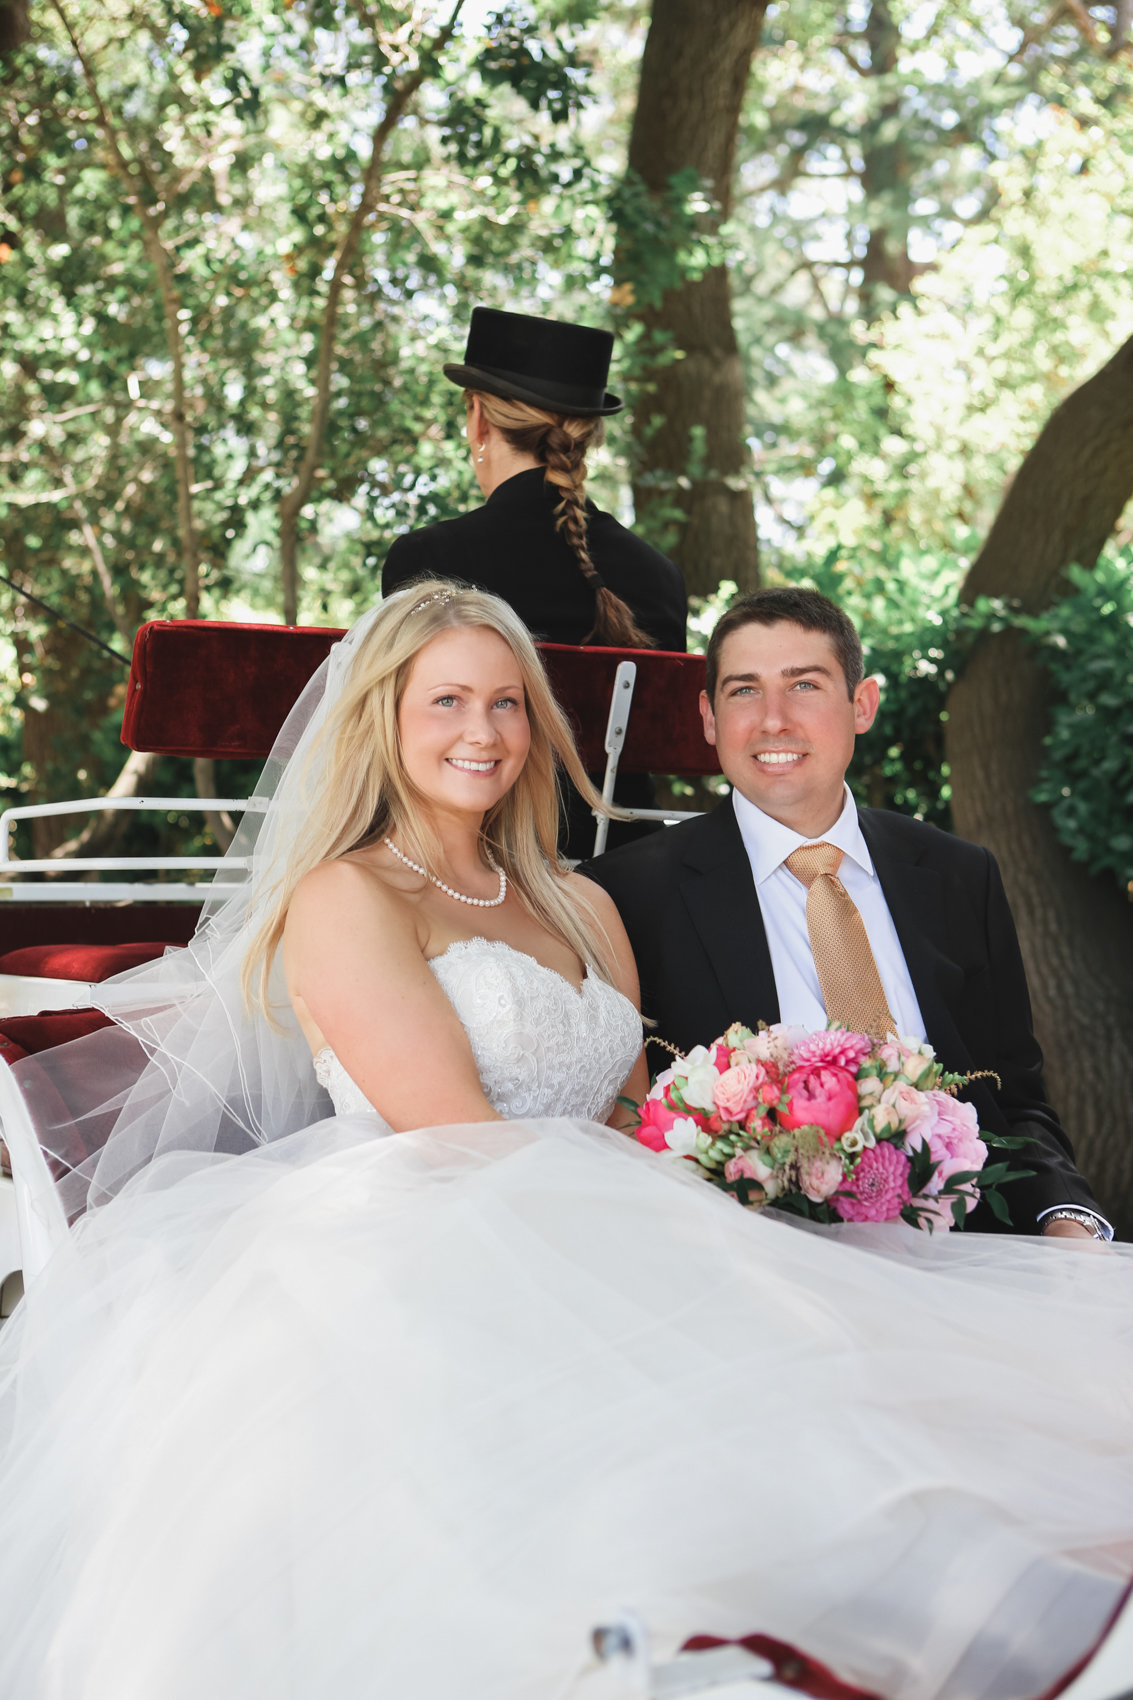 Los Altos wedding, bride and groom arrive at wedding in carriage